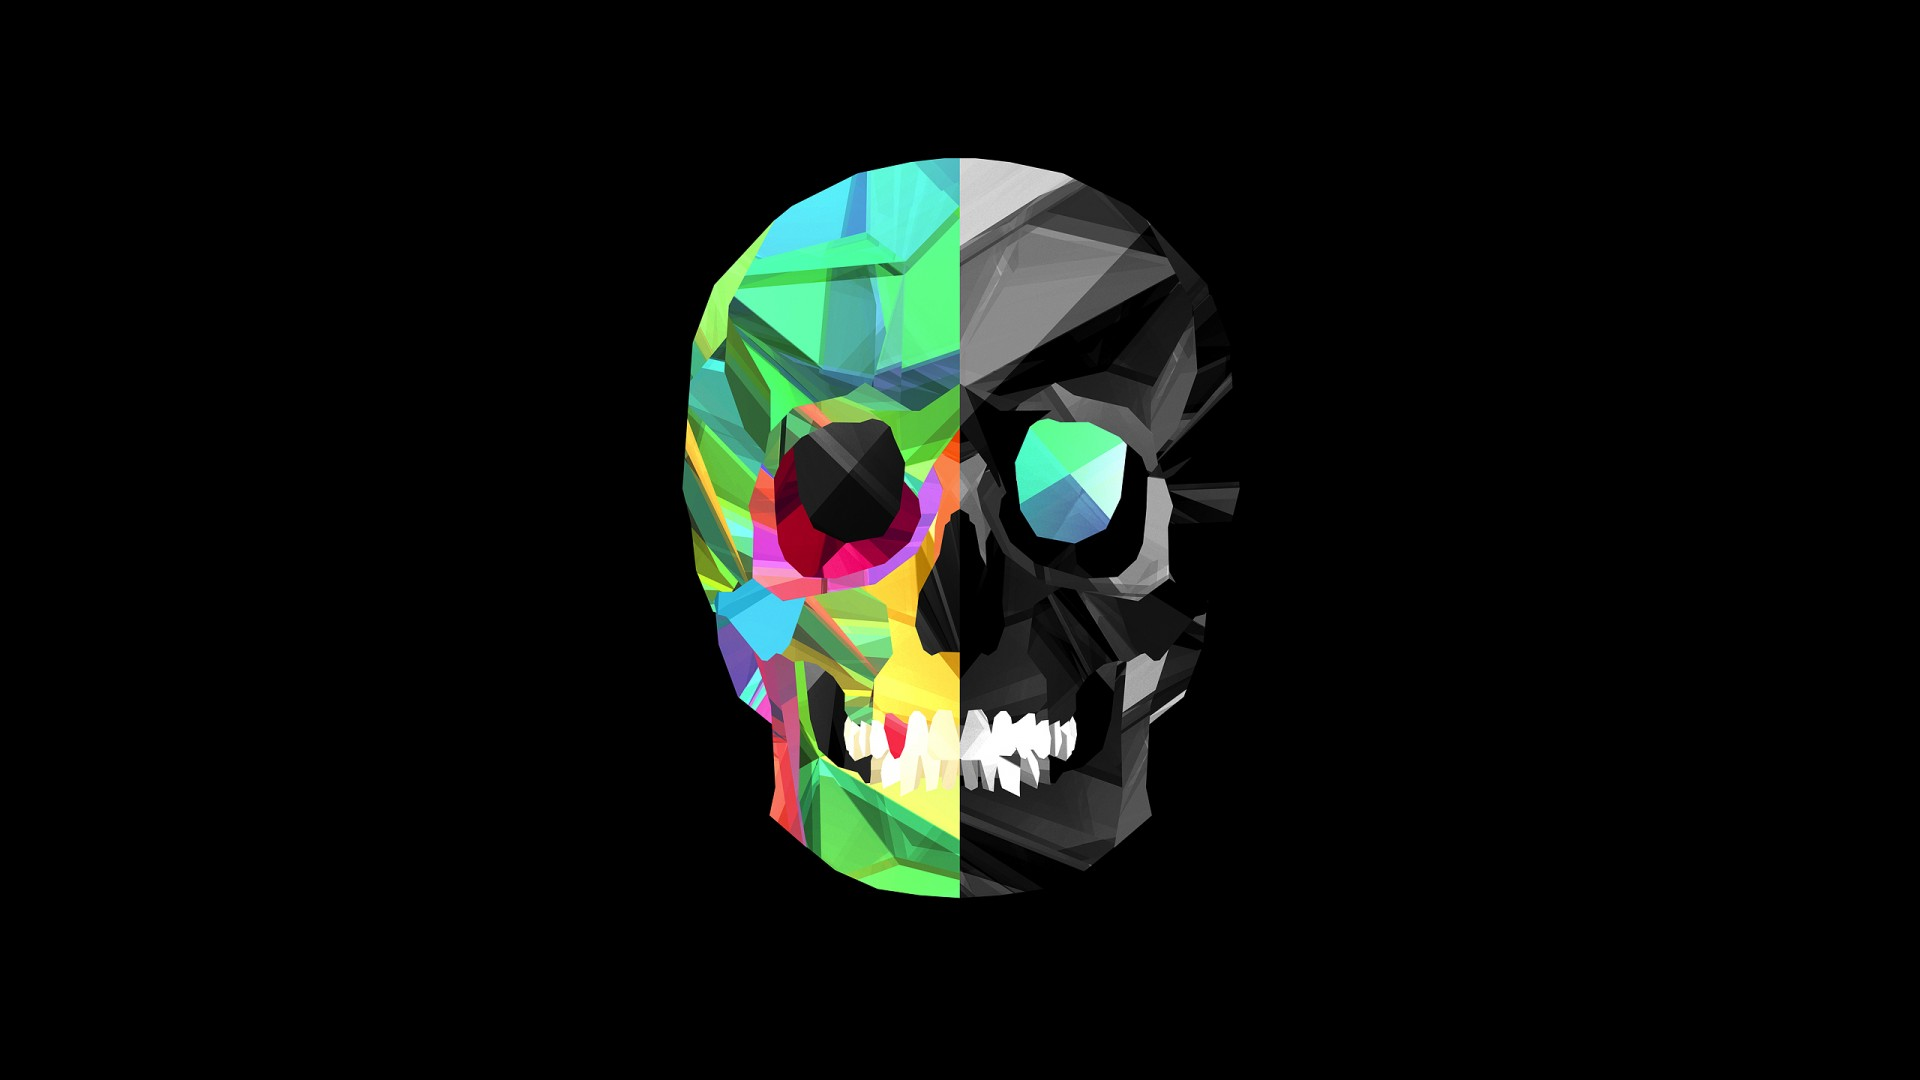 download skull wallpaper 48322 1920x1080 px high definition wallpaper